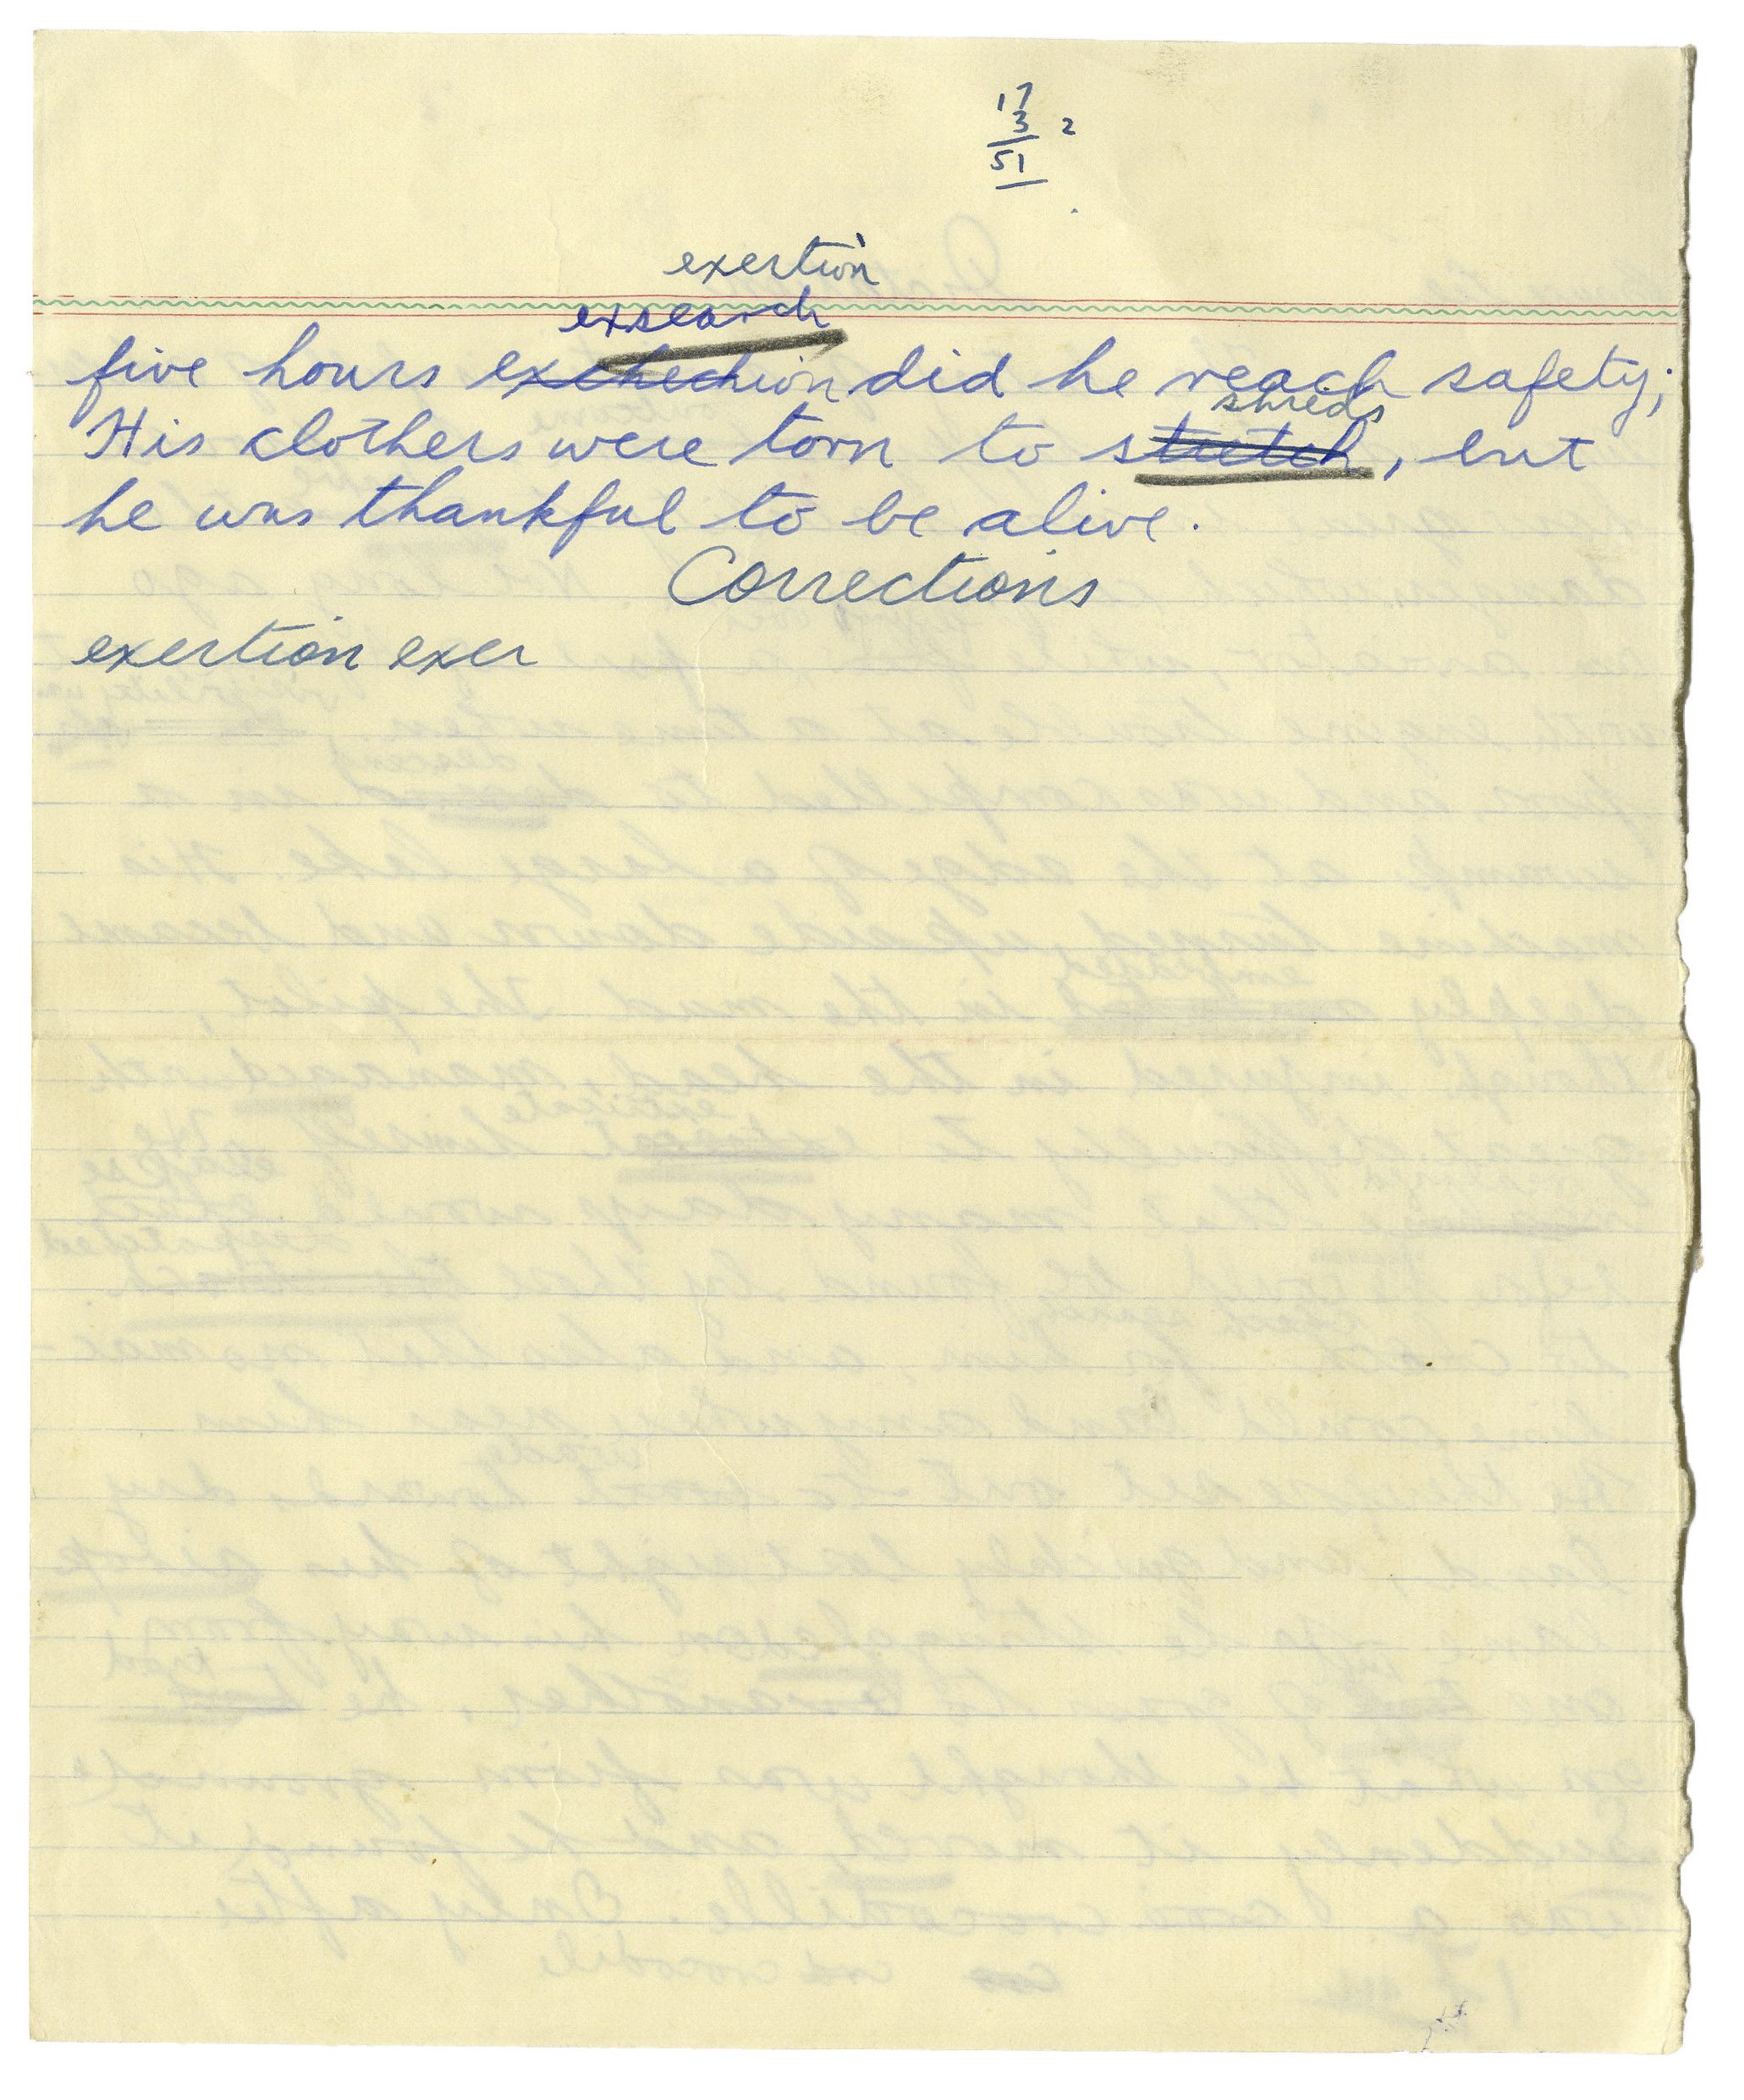 Thesis Statements Examples For Argumentative Essays Bruce Lee Personally Owned Signed  Handwritten Essay From High School    English Essay Friendship also Persuasive Essay Ideas For High School Lot Detail  Bruce Lee Personally Owned Signed  Handwritten Essay  An Essay On Health